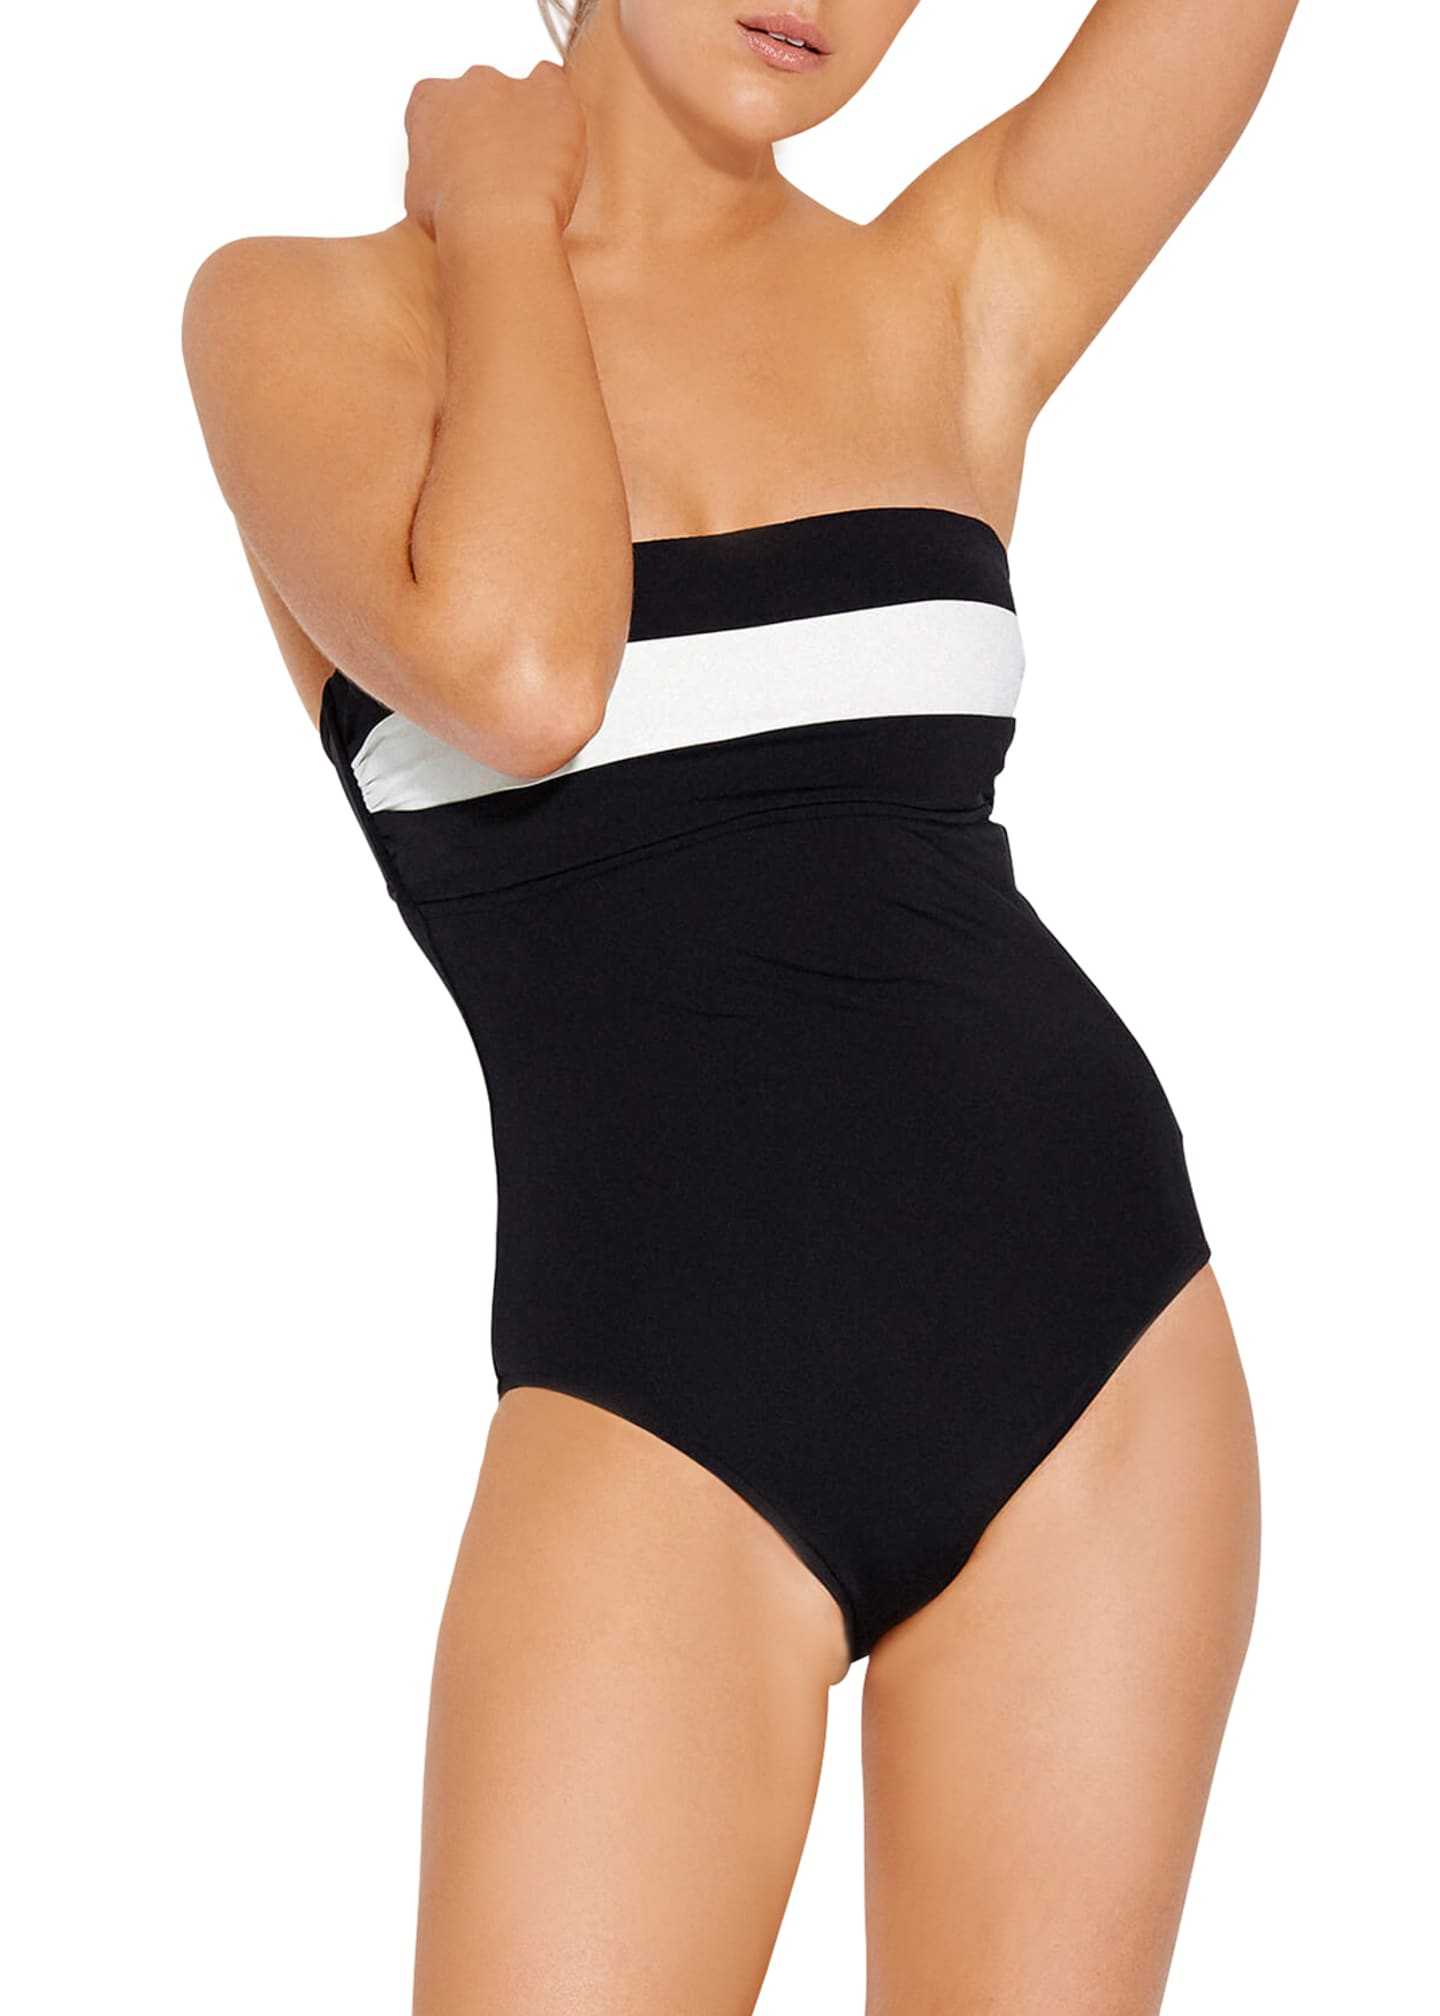 Seafolly Striped Bandeau Maillot One-Piece Swimsuit, Available in